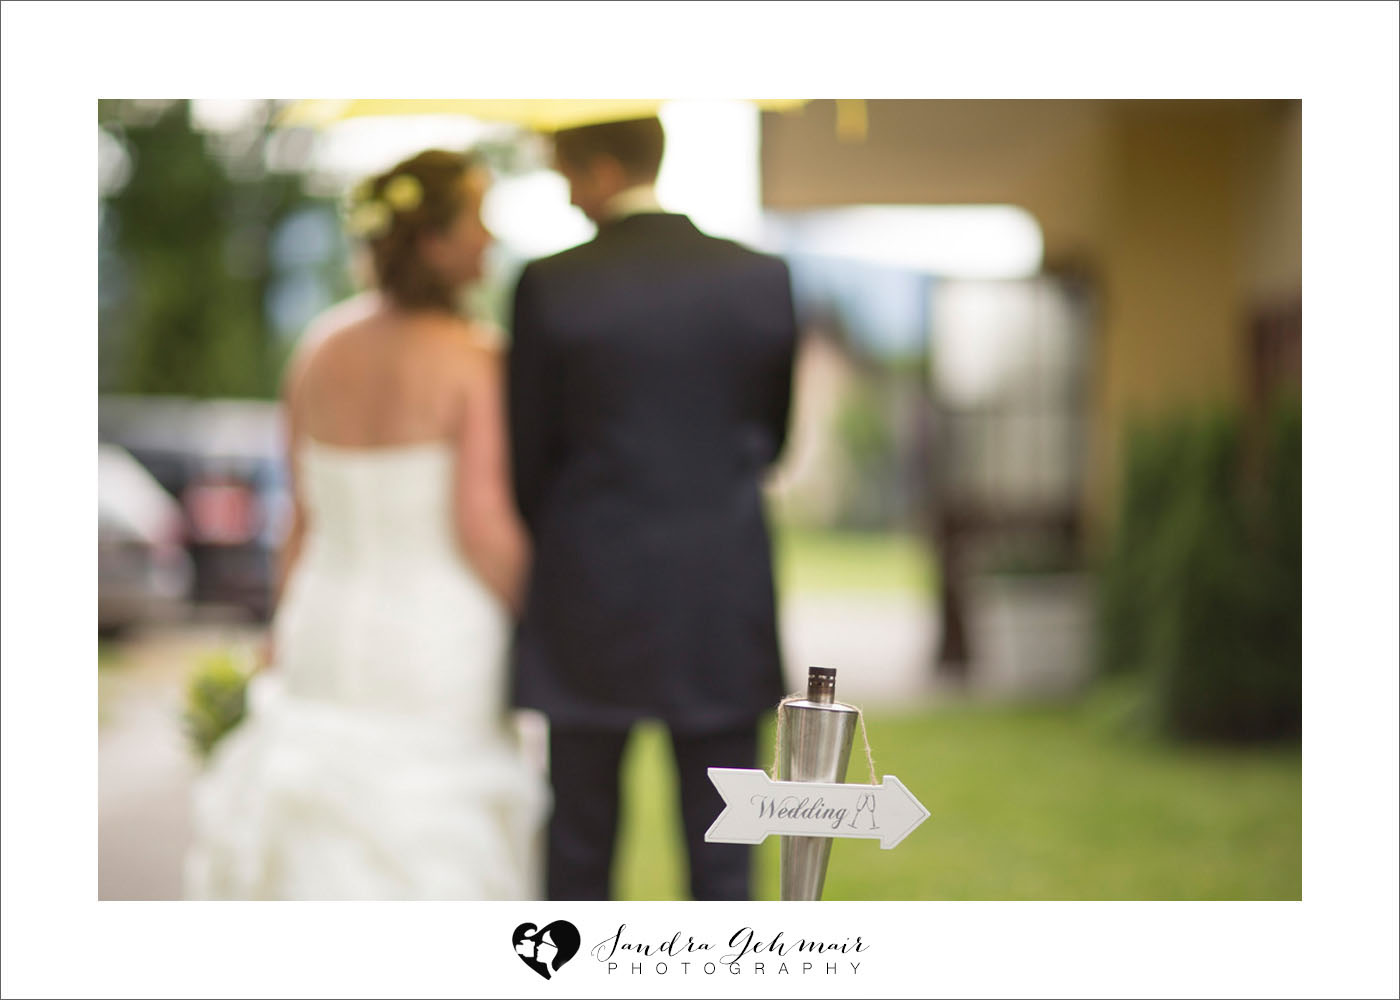 045_heiraten_am_see_spitzvilla_sandra_gehmair